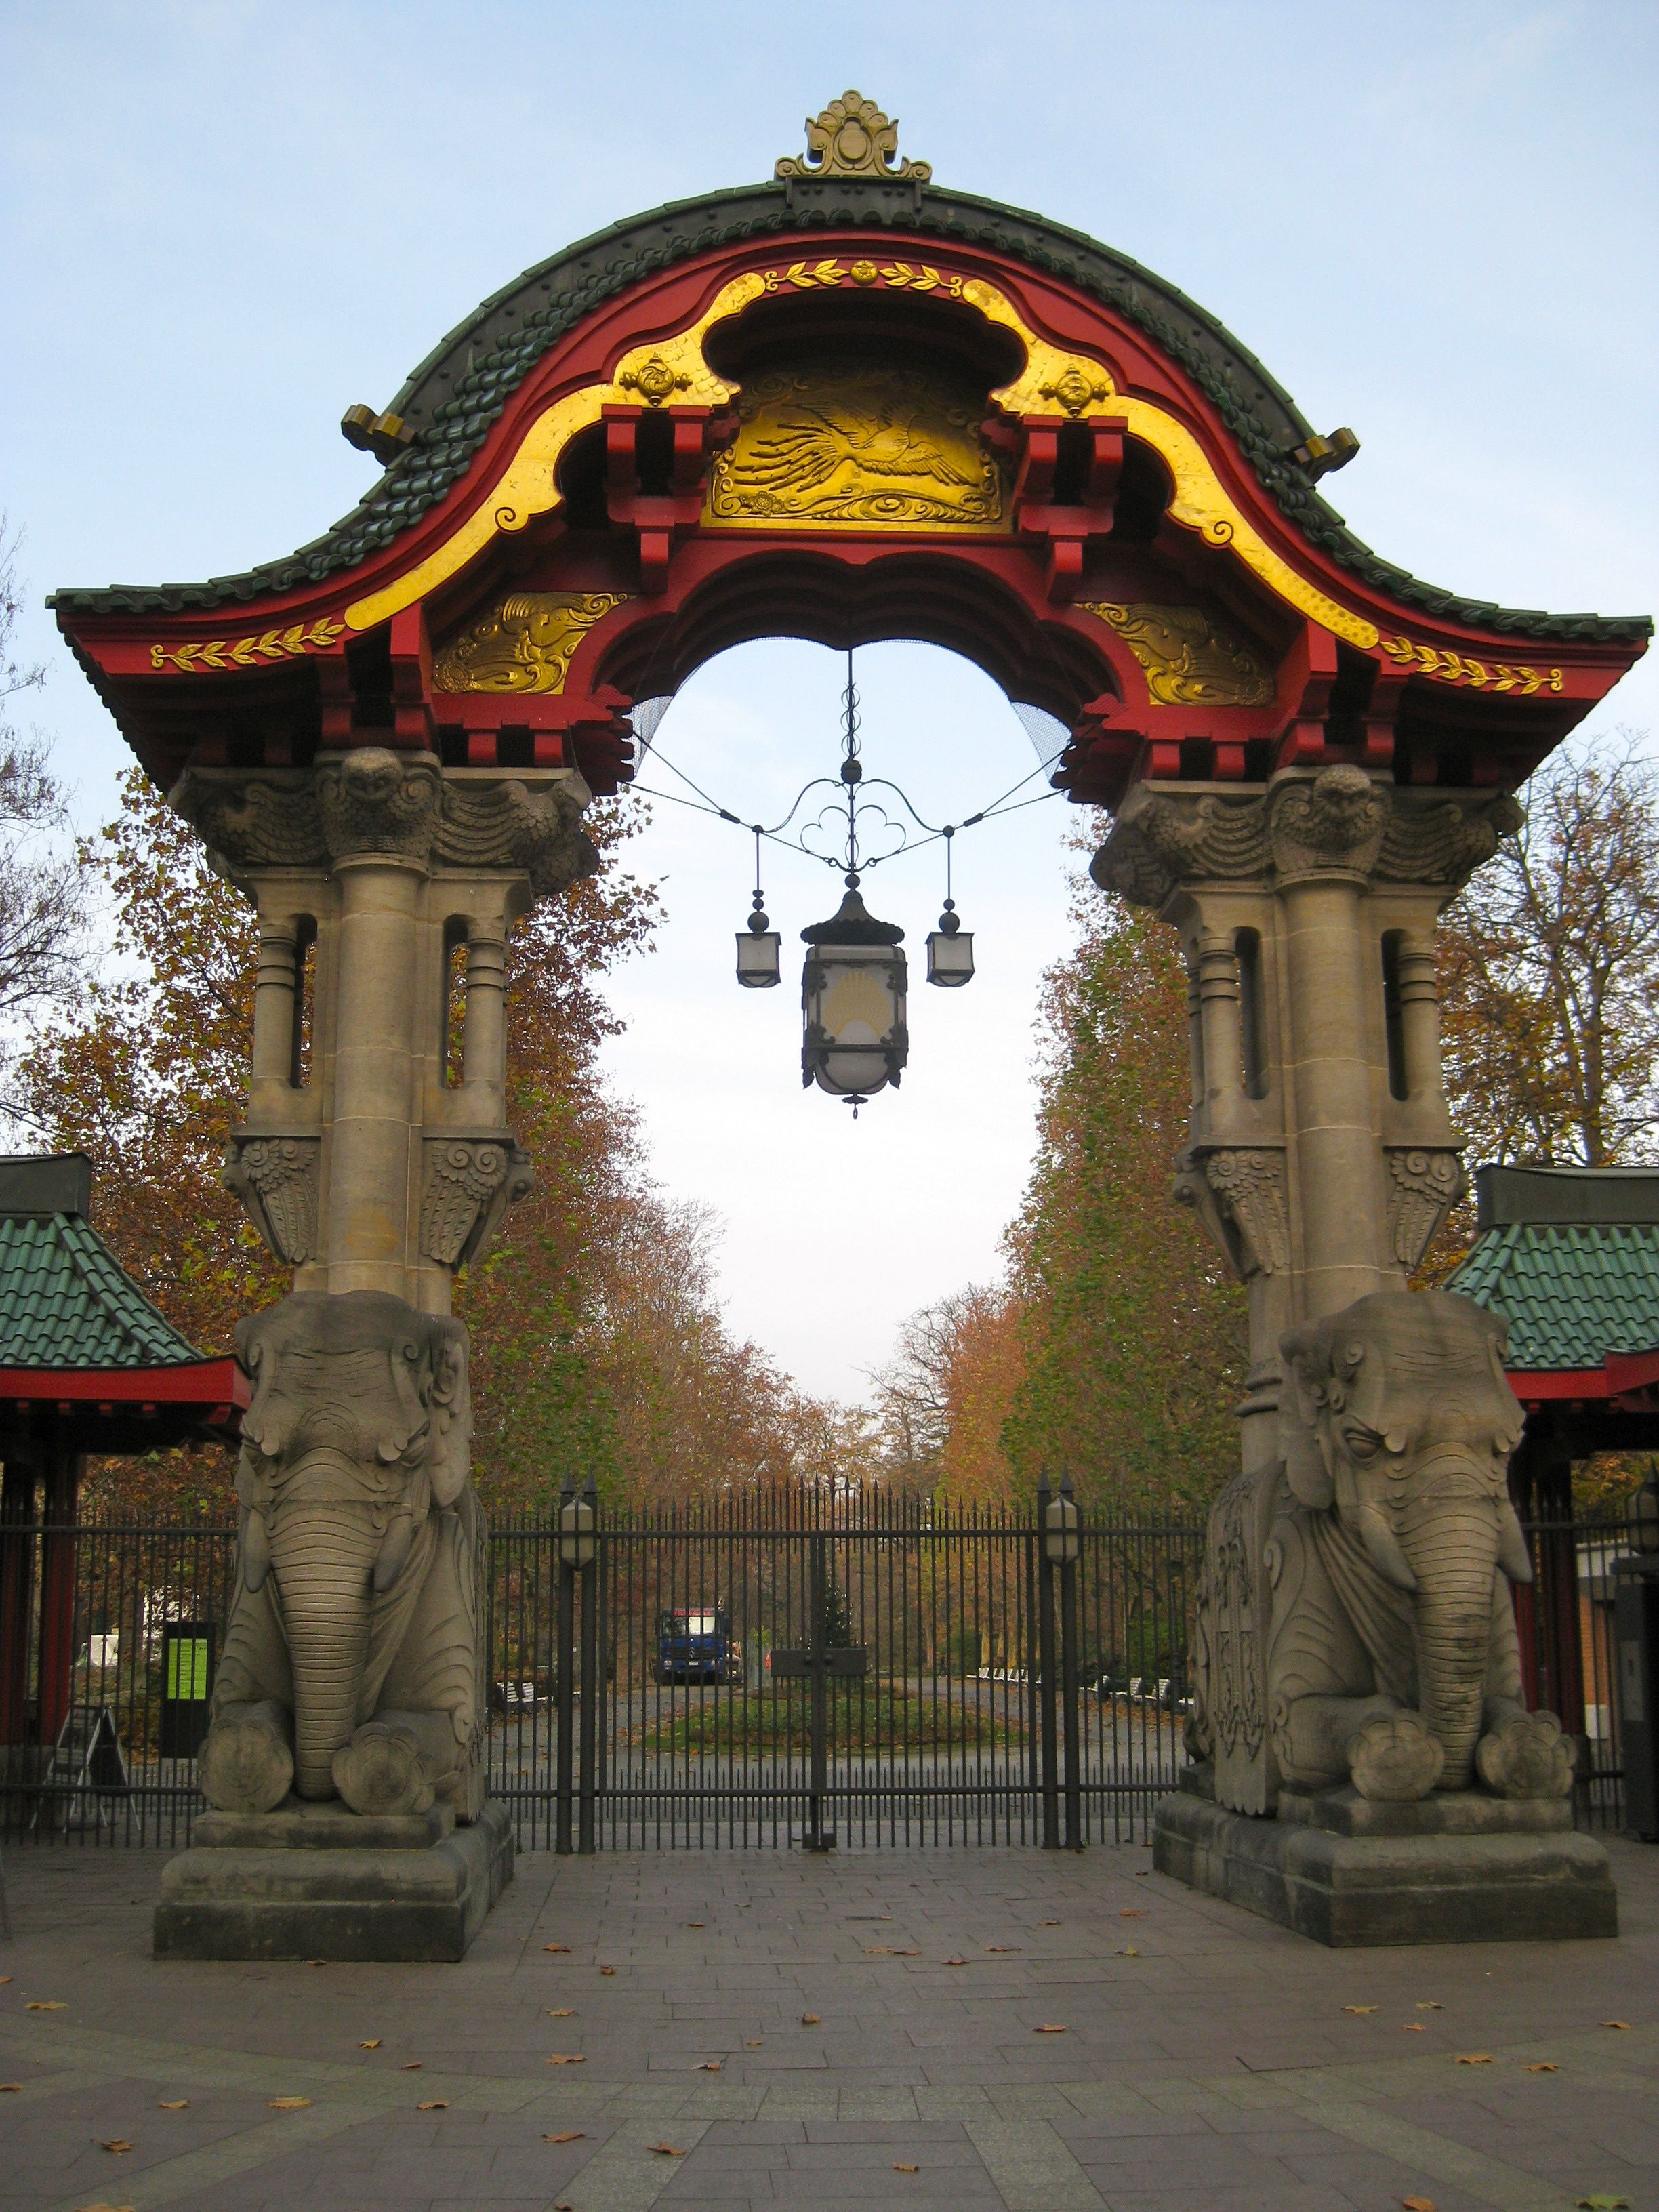 New Elephant Gate at the Berlin Zoological Garden